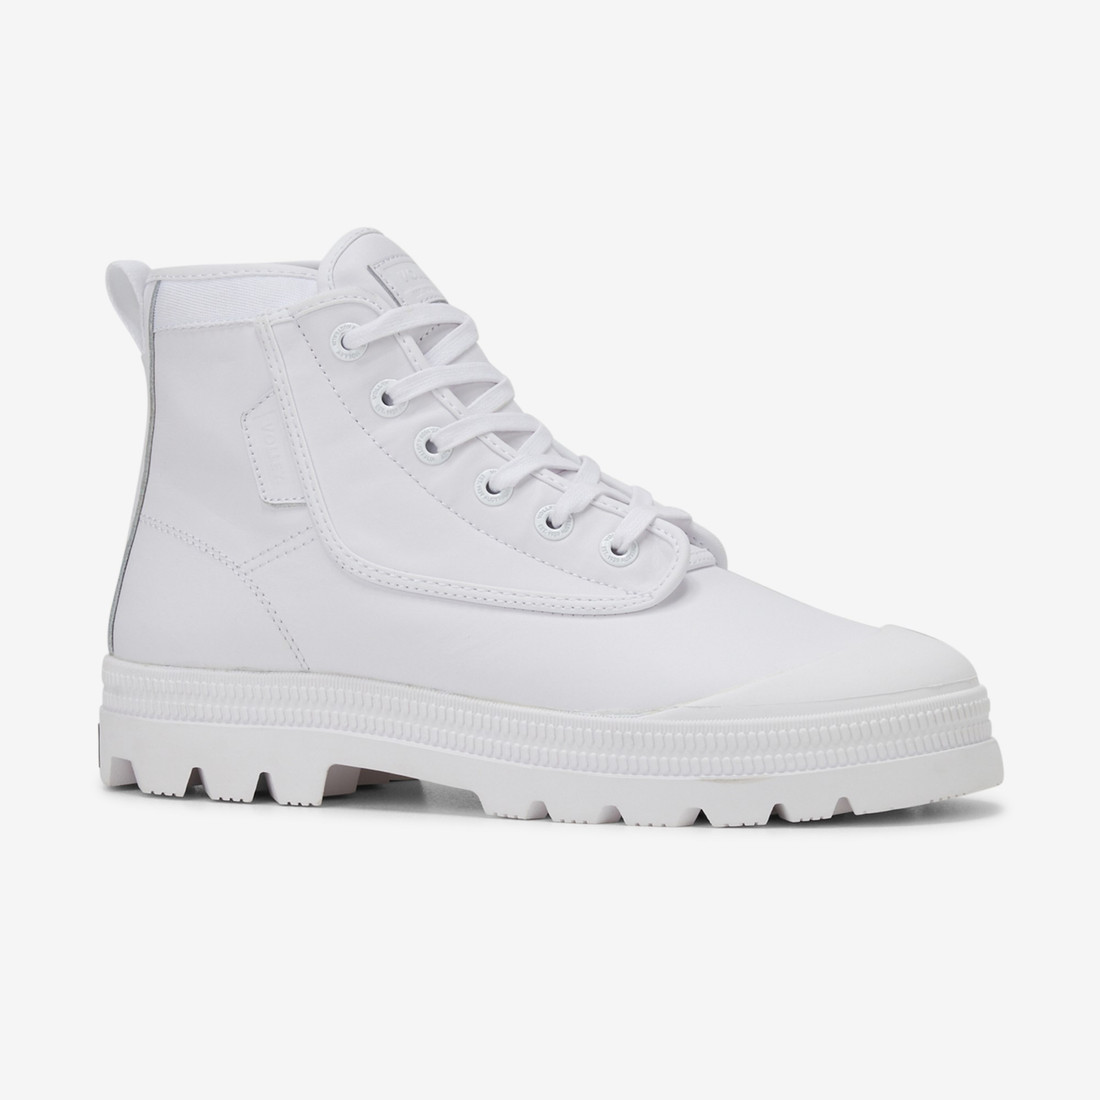 Volley UnisexAdultOVERGRIP LEATHER White   2